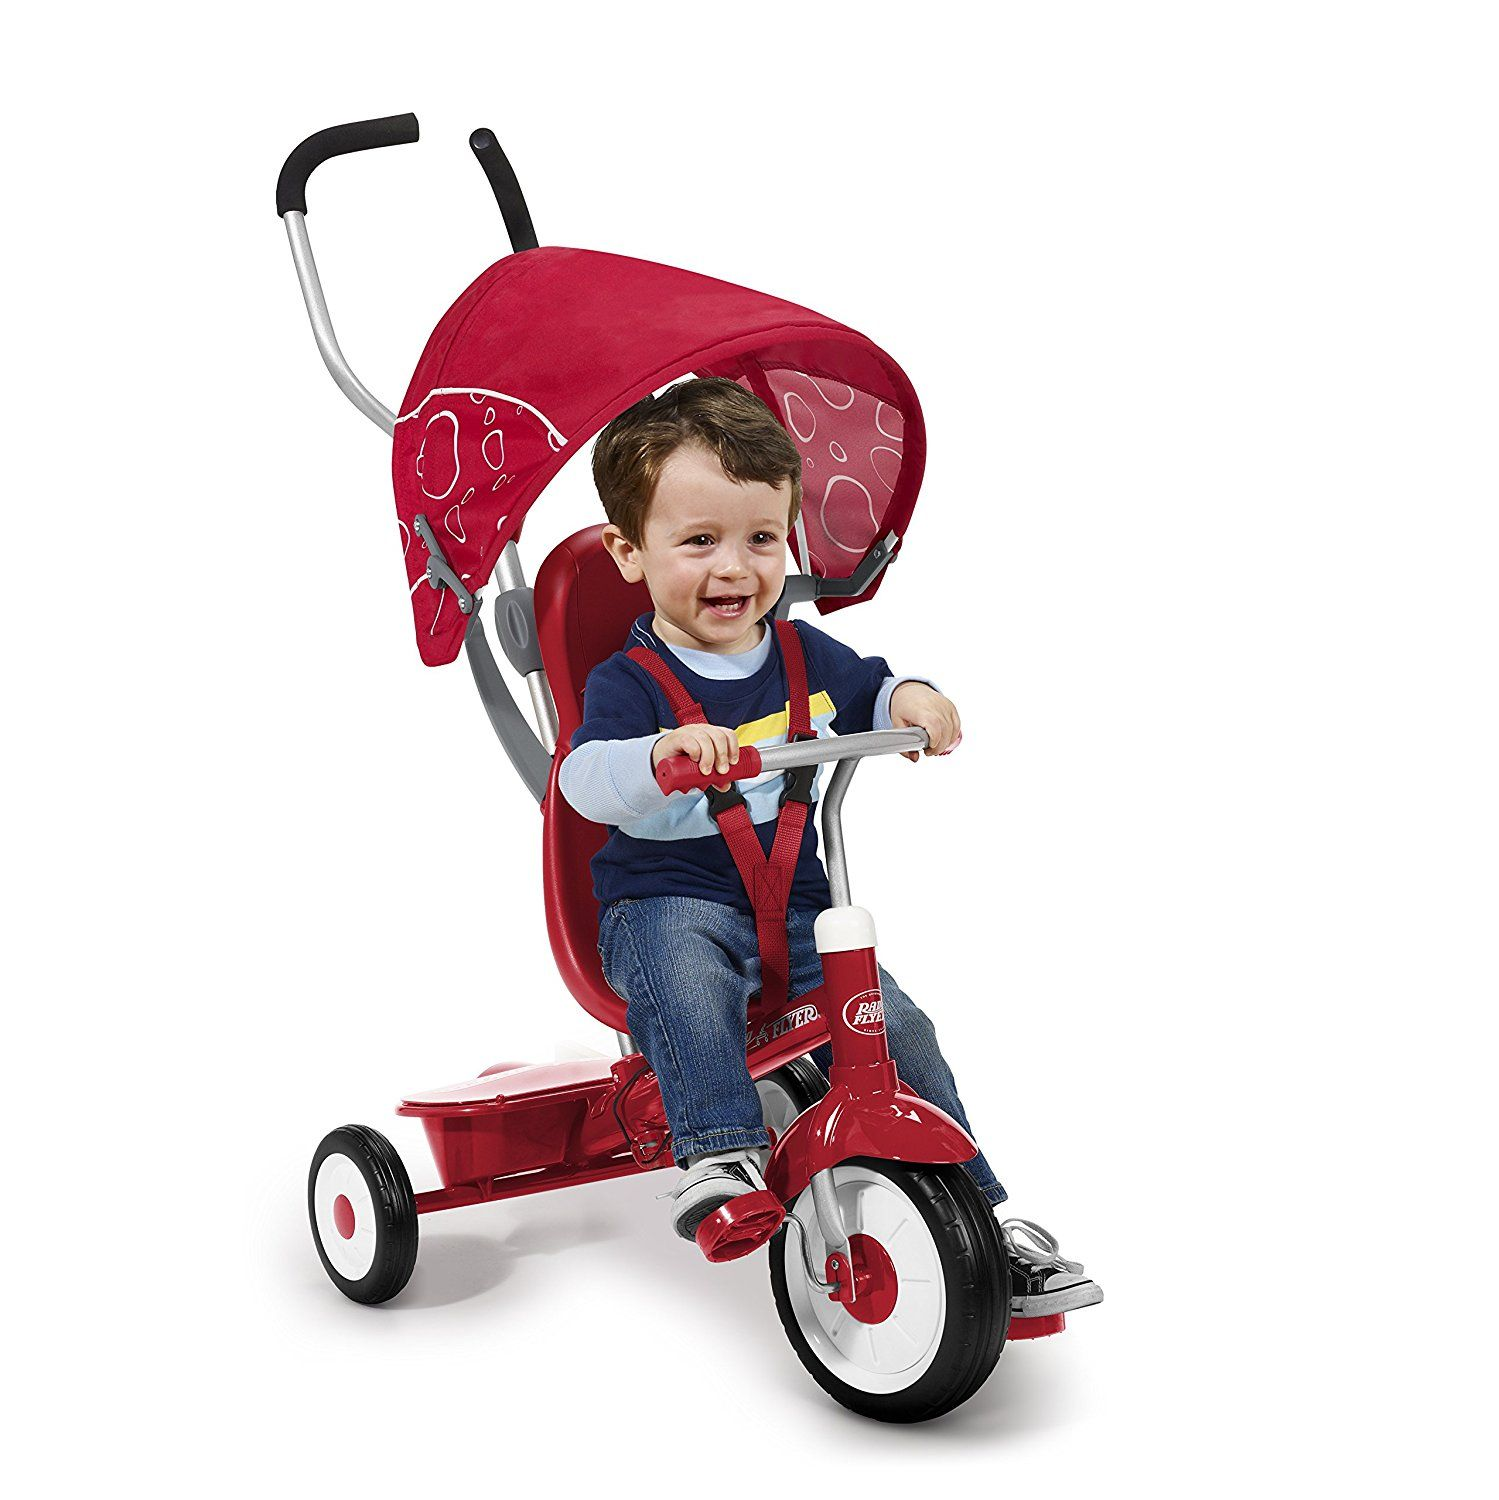 The Best Toddler Tricycle For 2 And 3 Year Old The 4 In 1 Trike